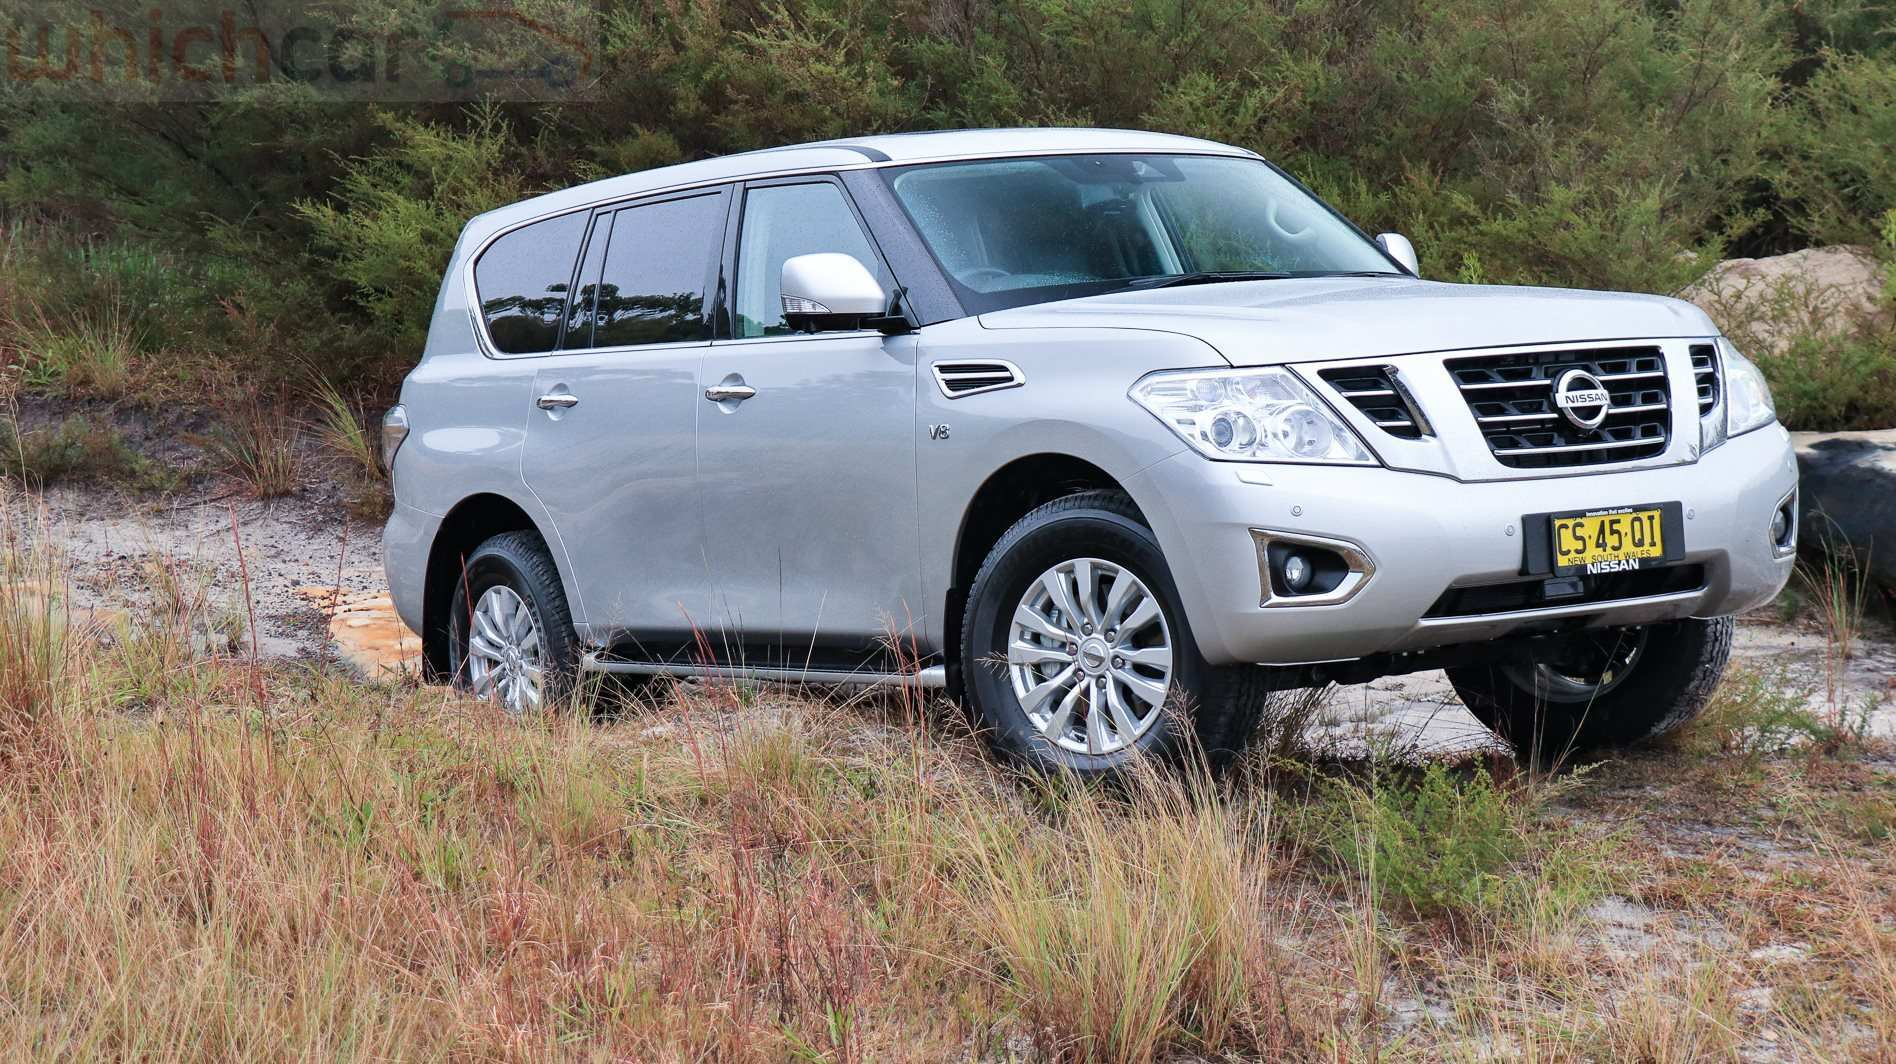 93 All New 2019 Nissan Patrol Wallpaper